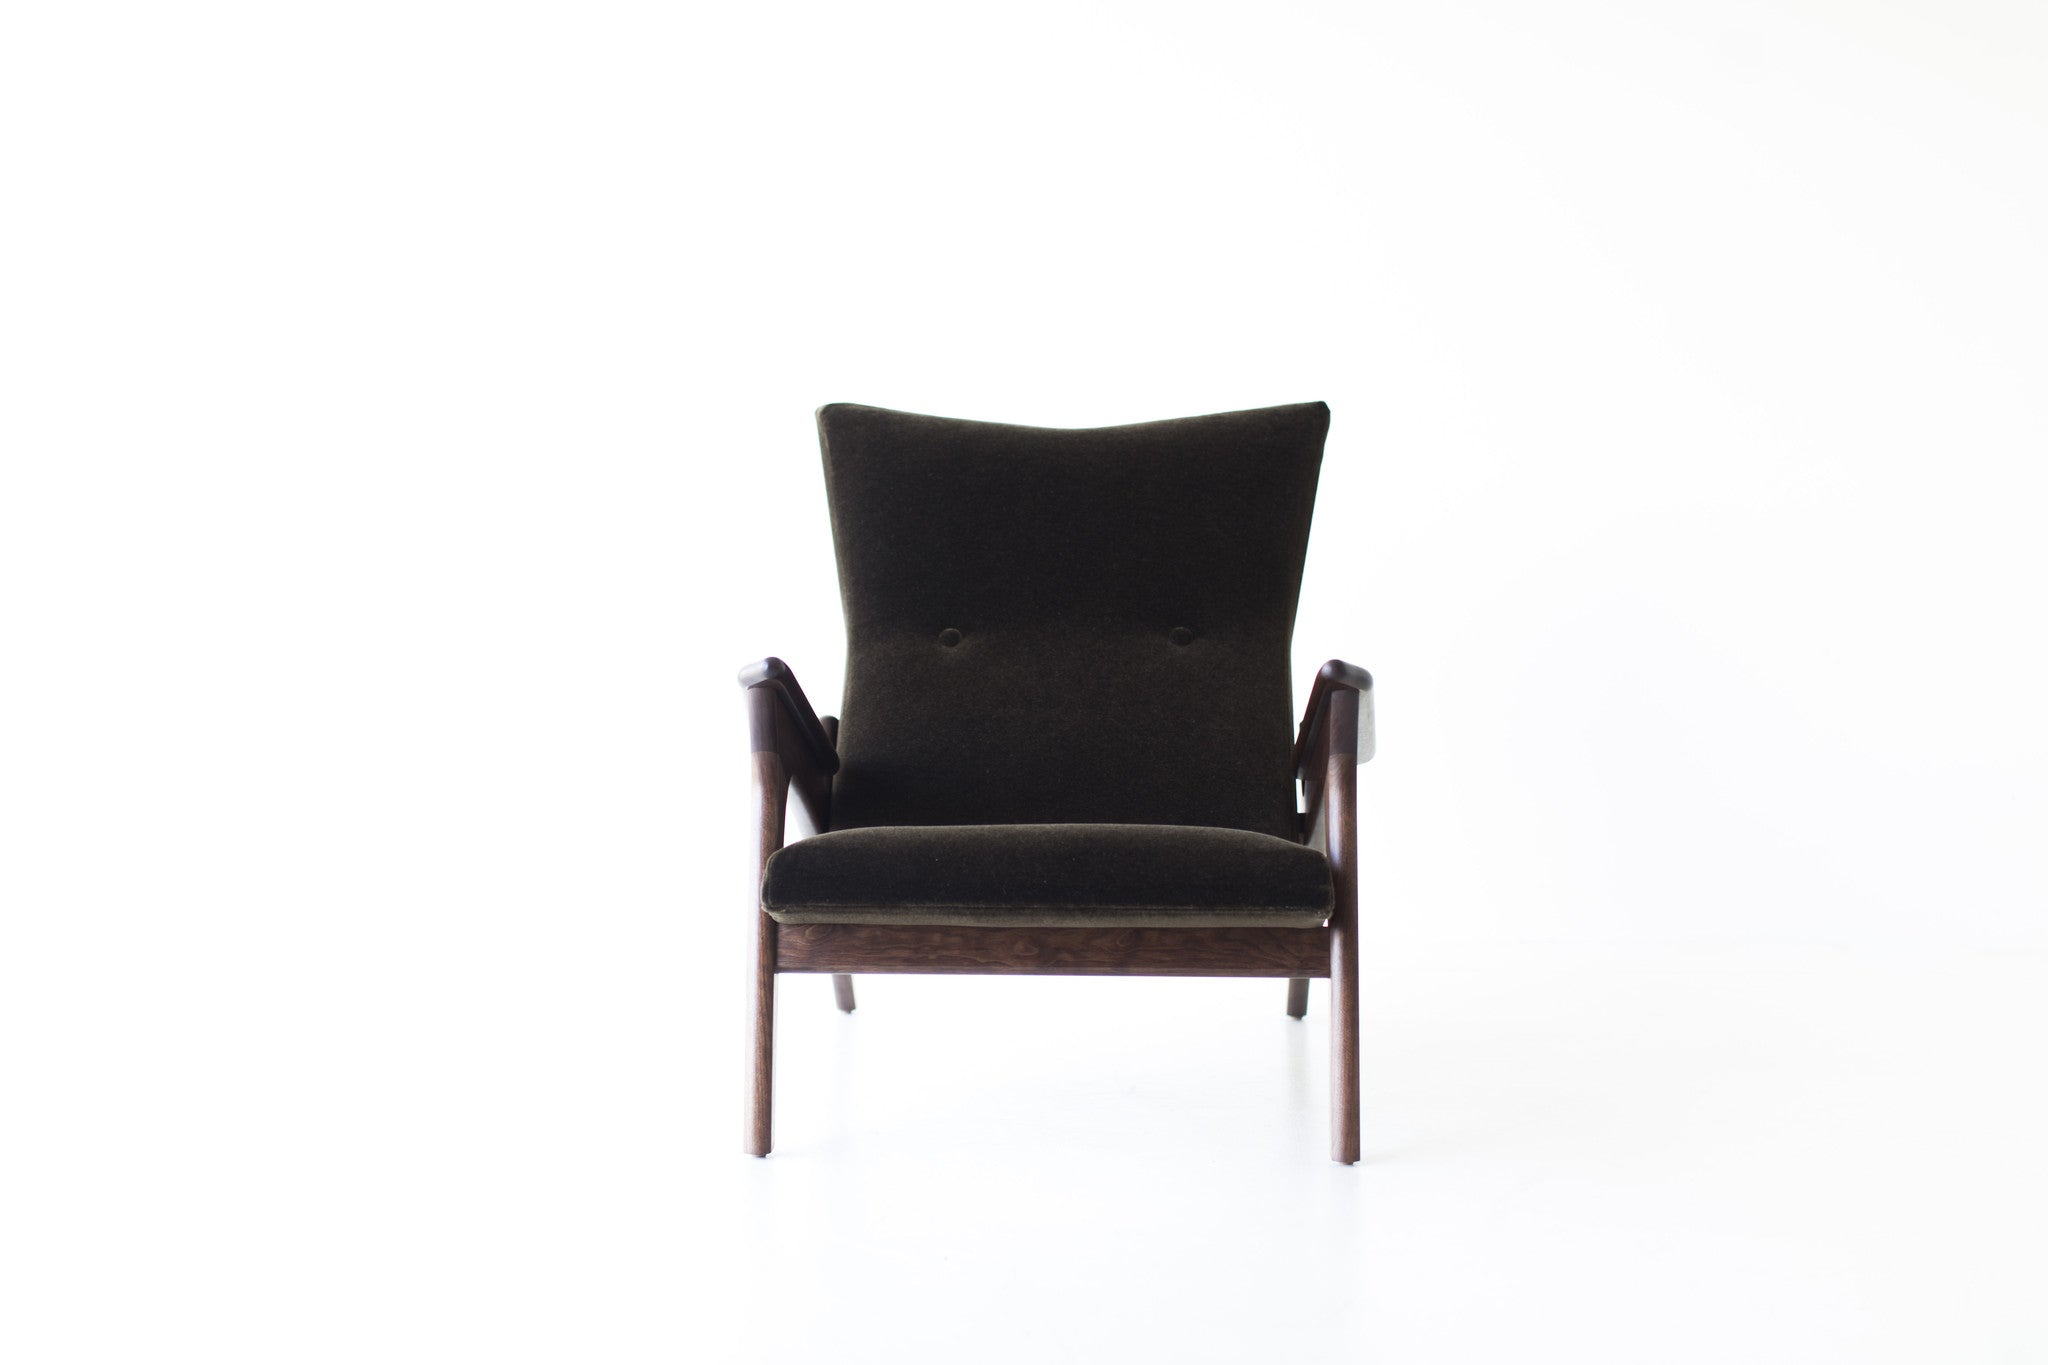 modern-wooden-arm-wing-chair-1521-craft-associates-furniture-06